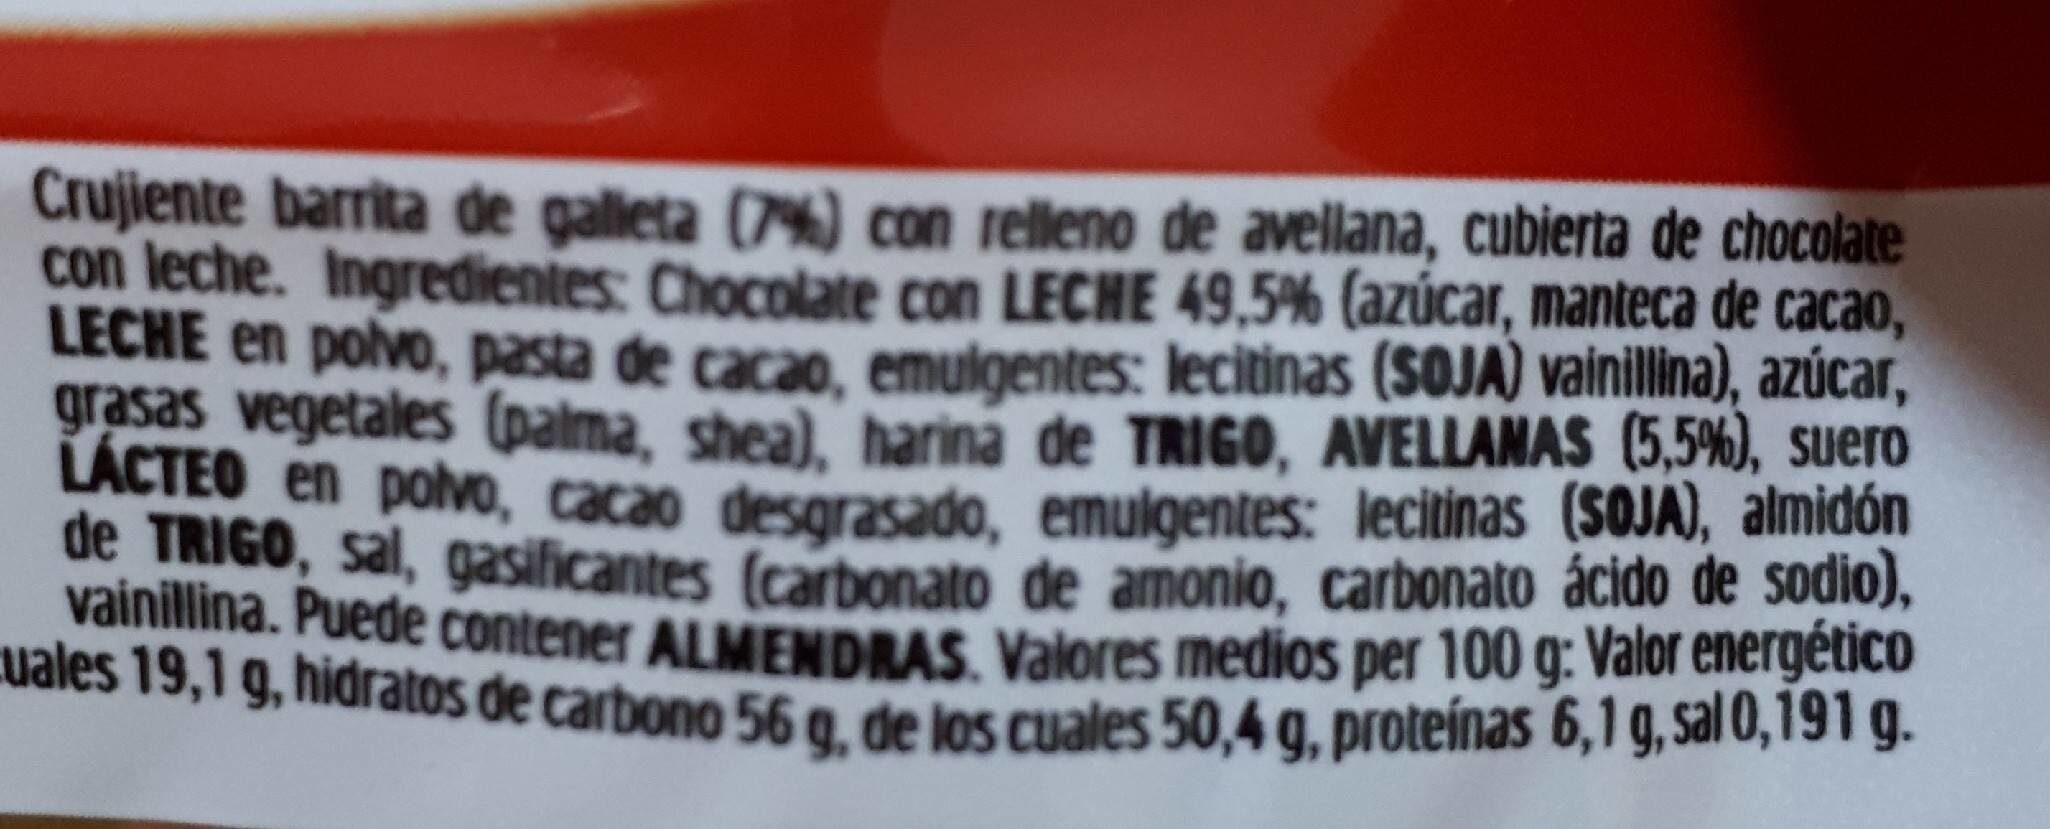 Ferrero Duplo choco stick - Nutrition facts - es